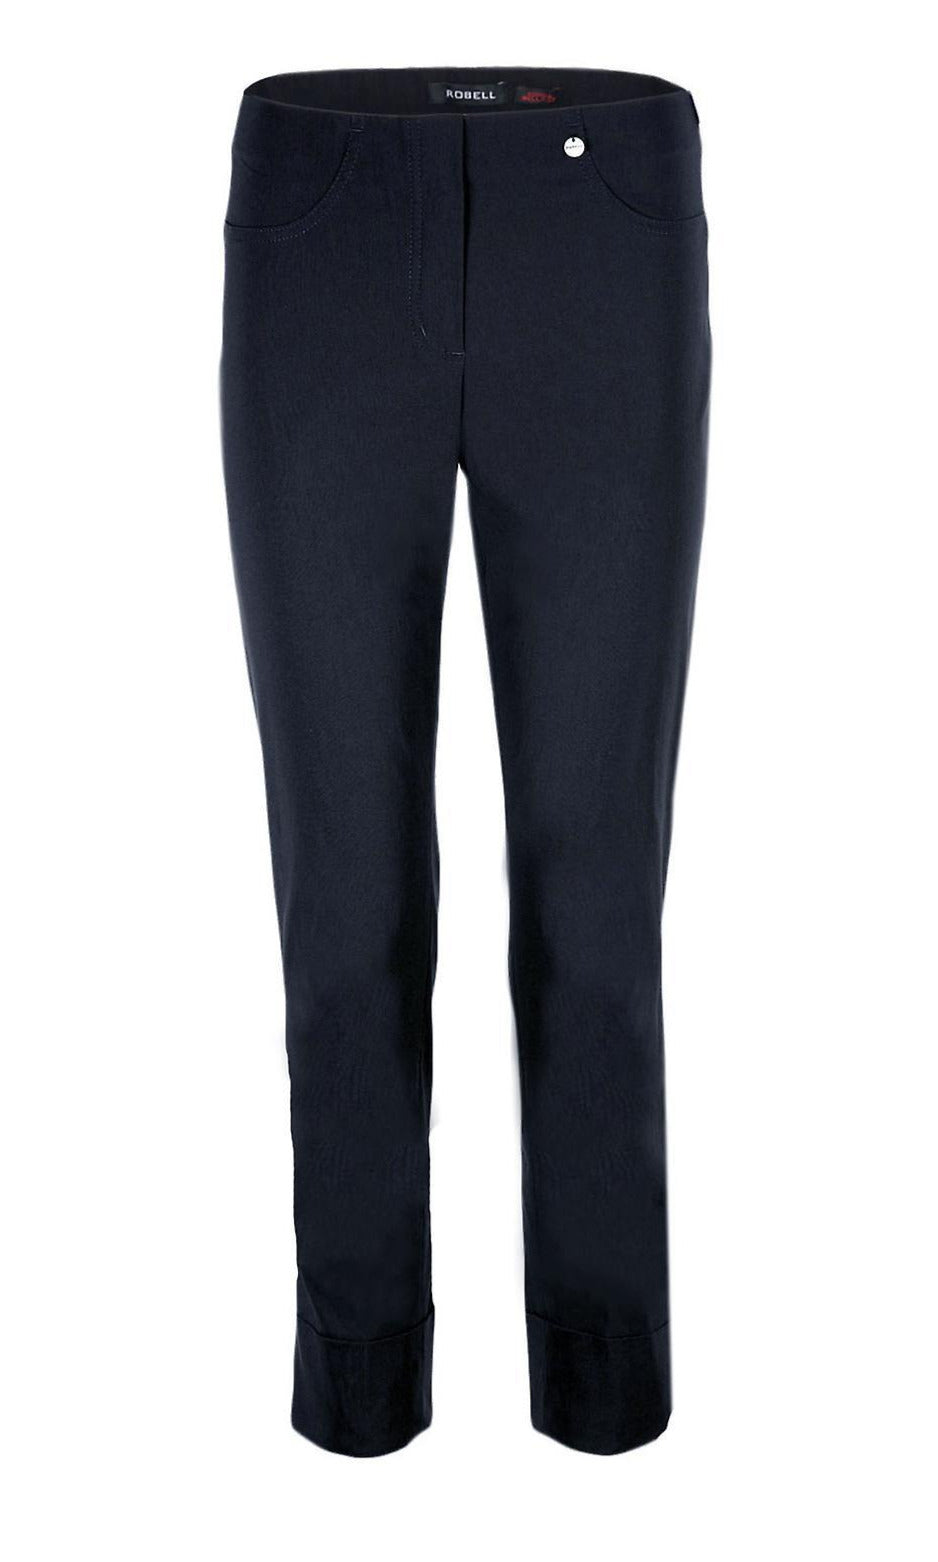 Bella Cuff Ankle Length Trousers in Navy at Rocco Boutique Dublin